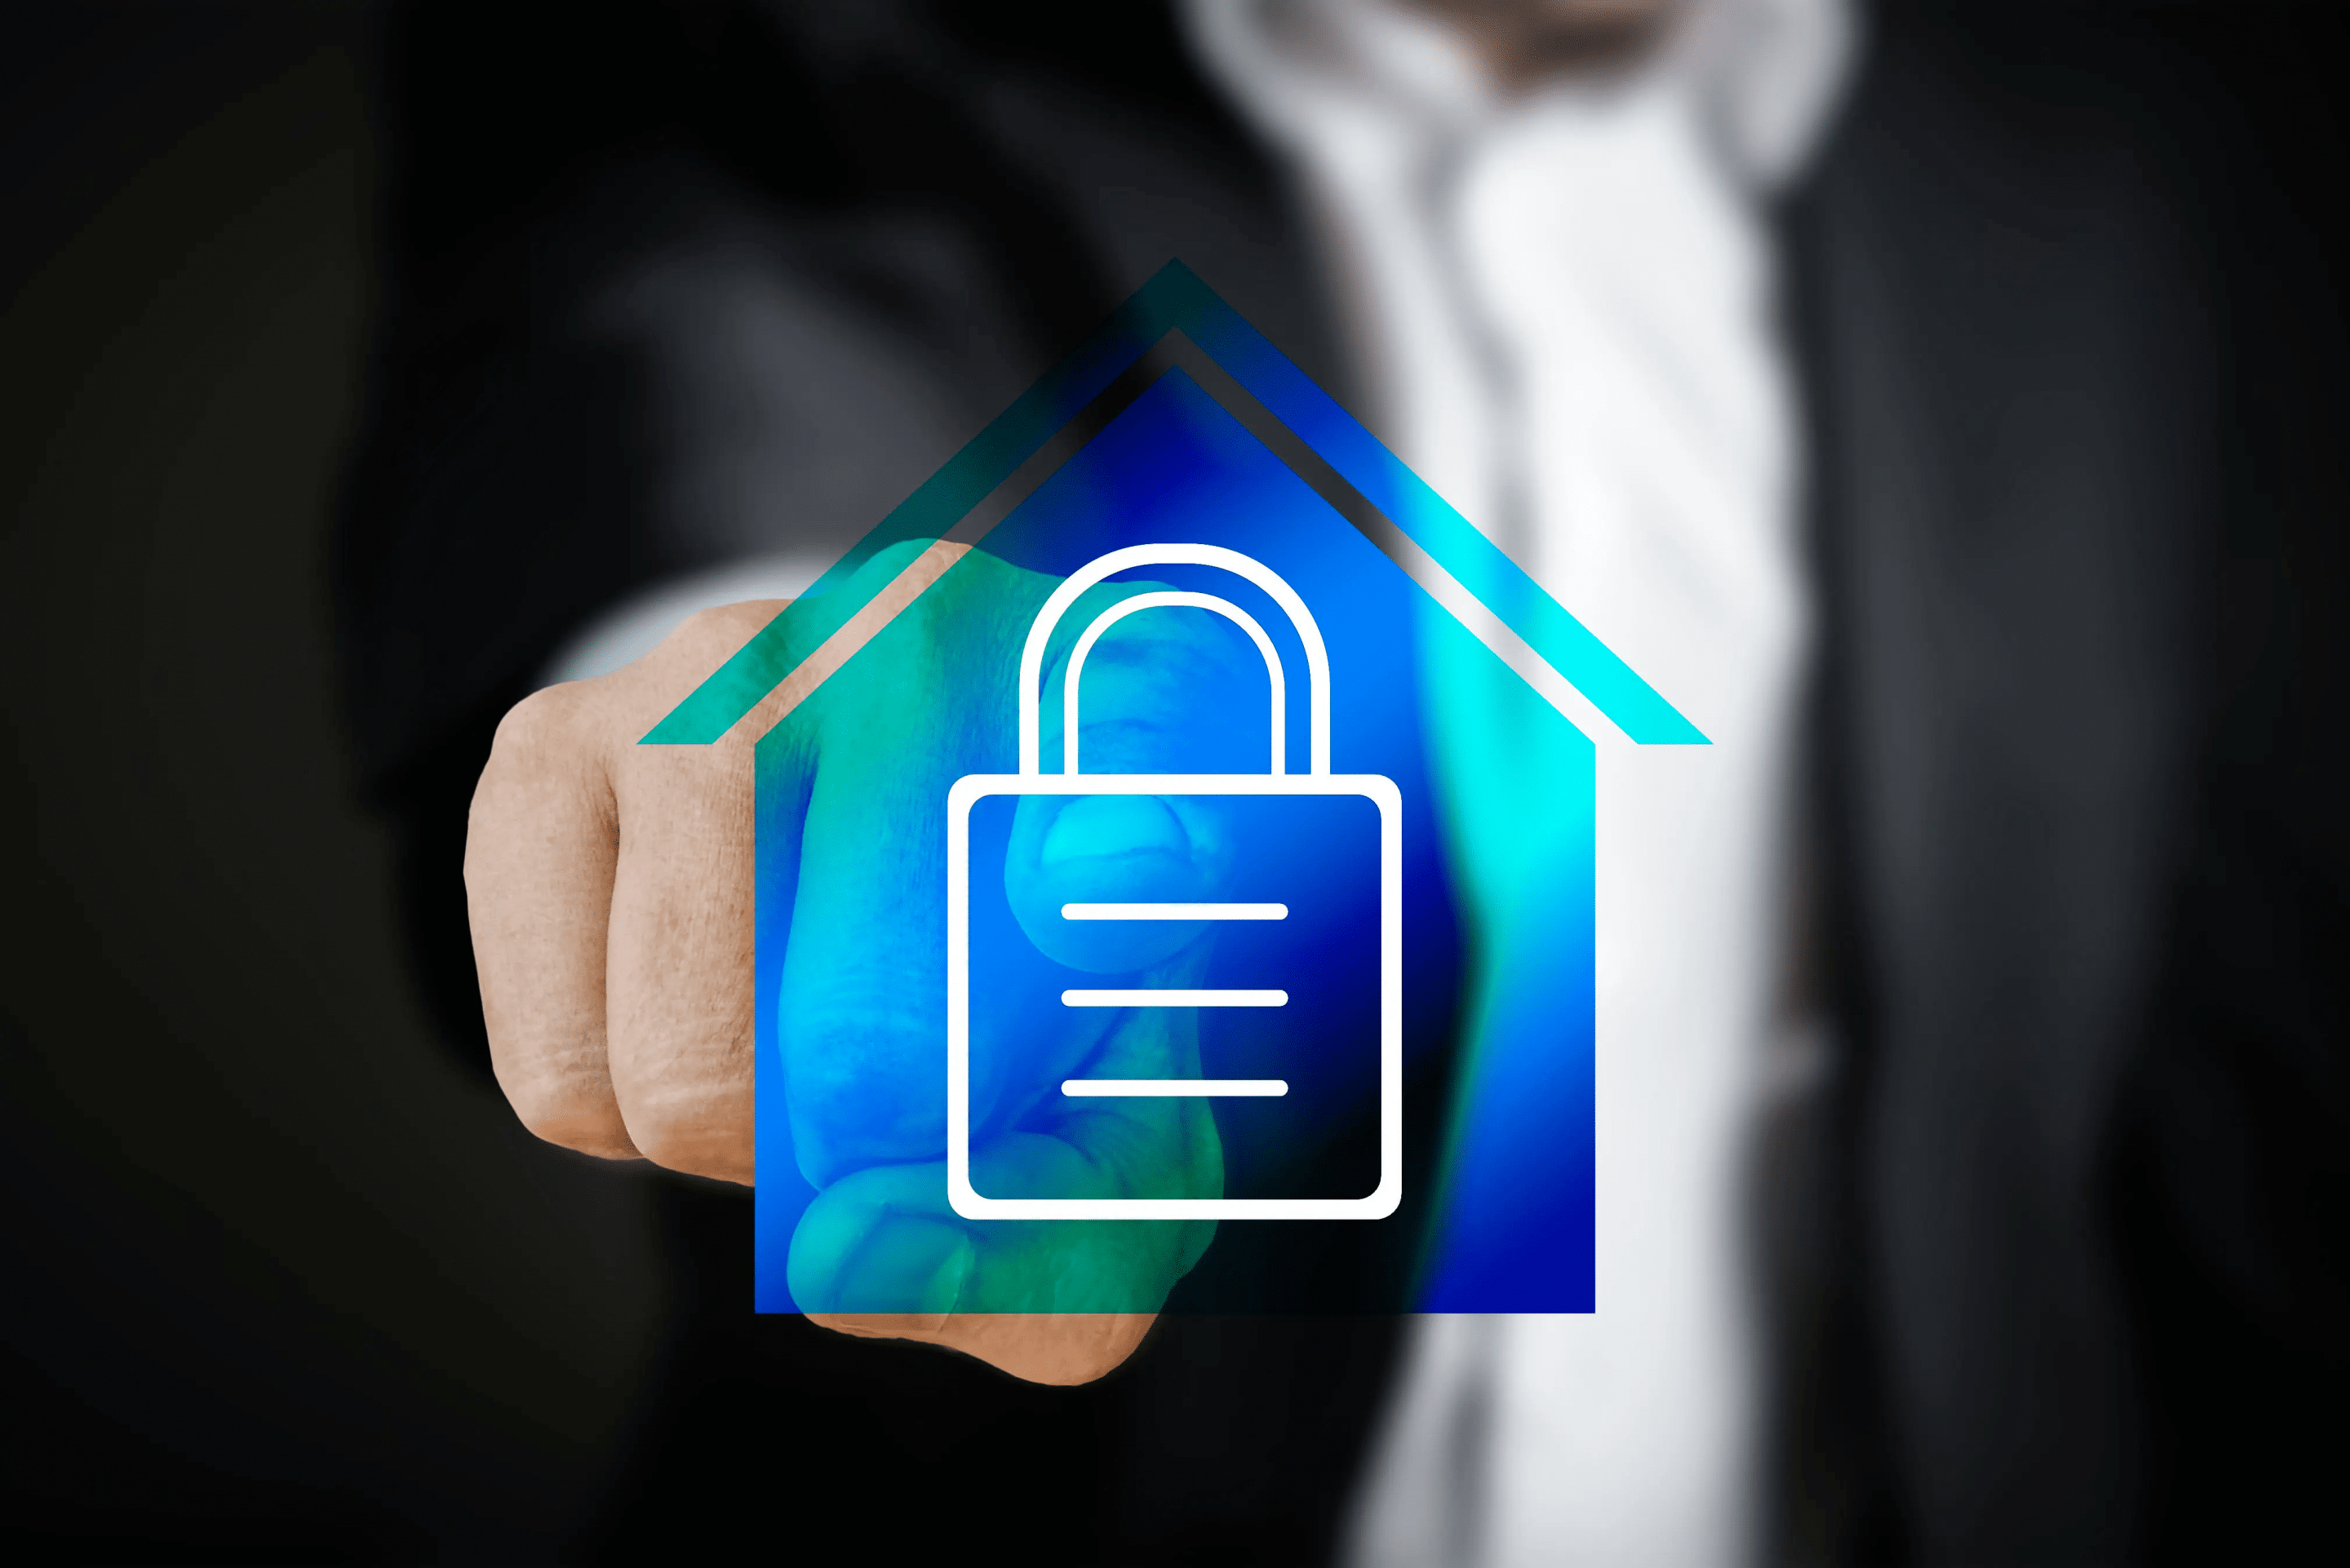 Home Security - IoT Case Studies - Efon Technology